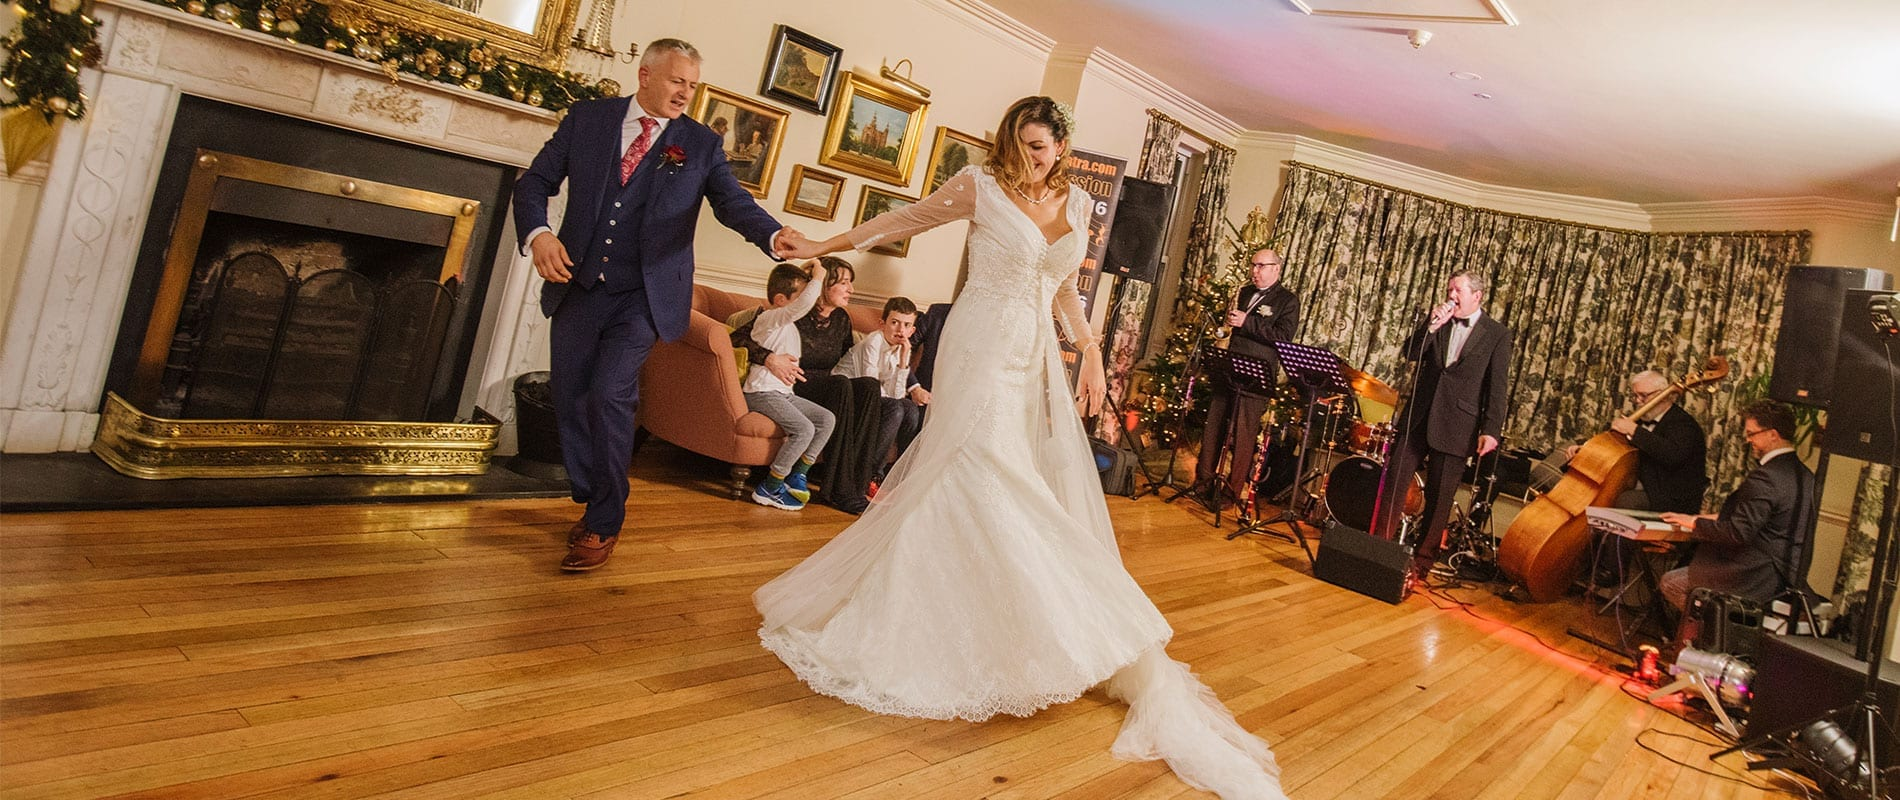 Sheen Falls Lodge Wedding Photographer Nick Cavanagh